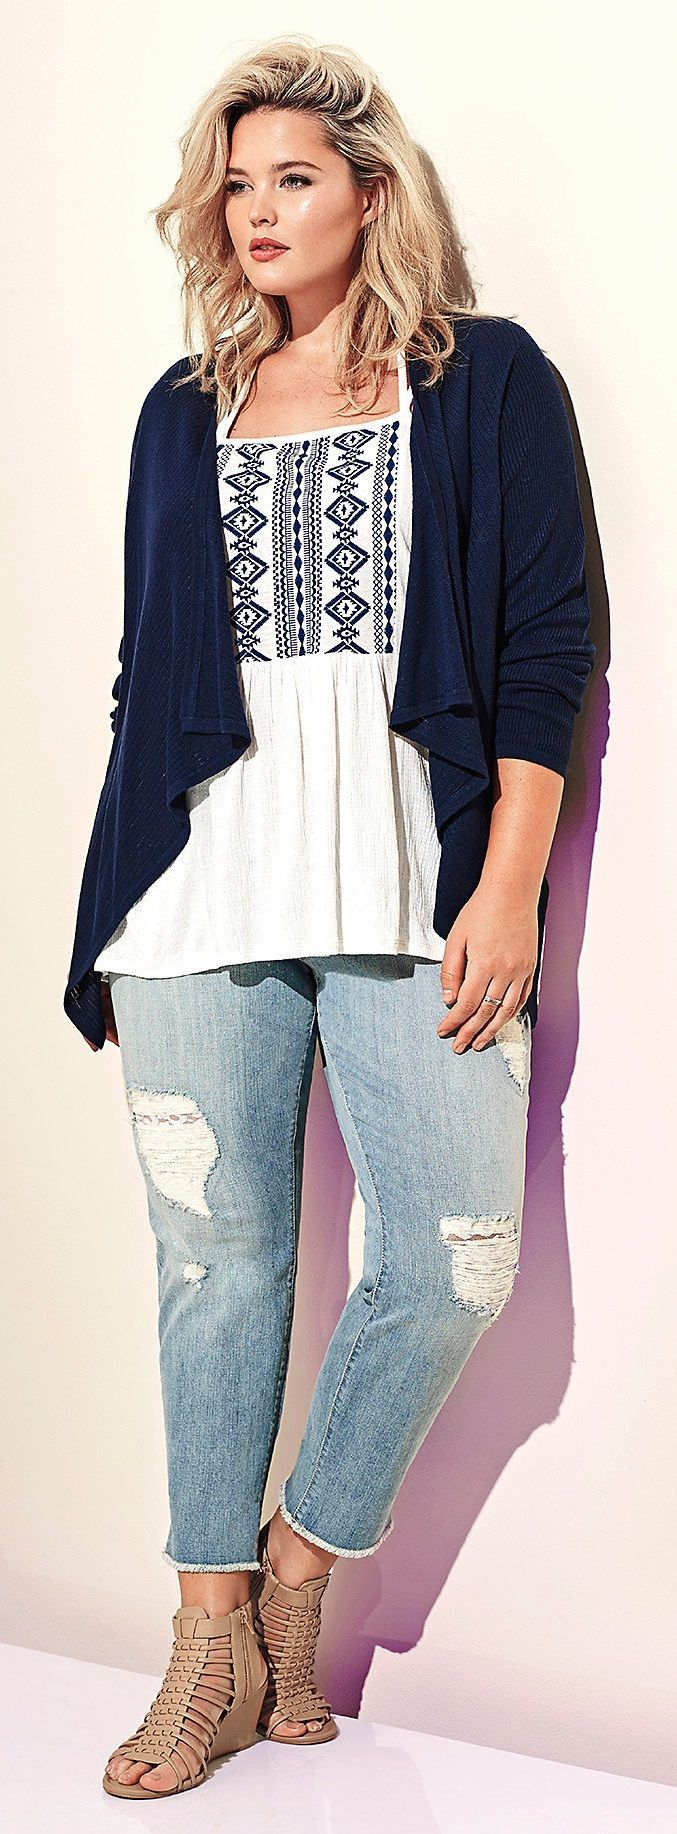 nice Torrid - Torrid Faux Embroidered Tank Top by http://www.globalfashionista.xyz/plus-size-fashion/torrid-torrid-faux-embroidered-tank-top/